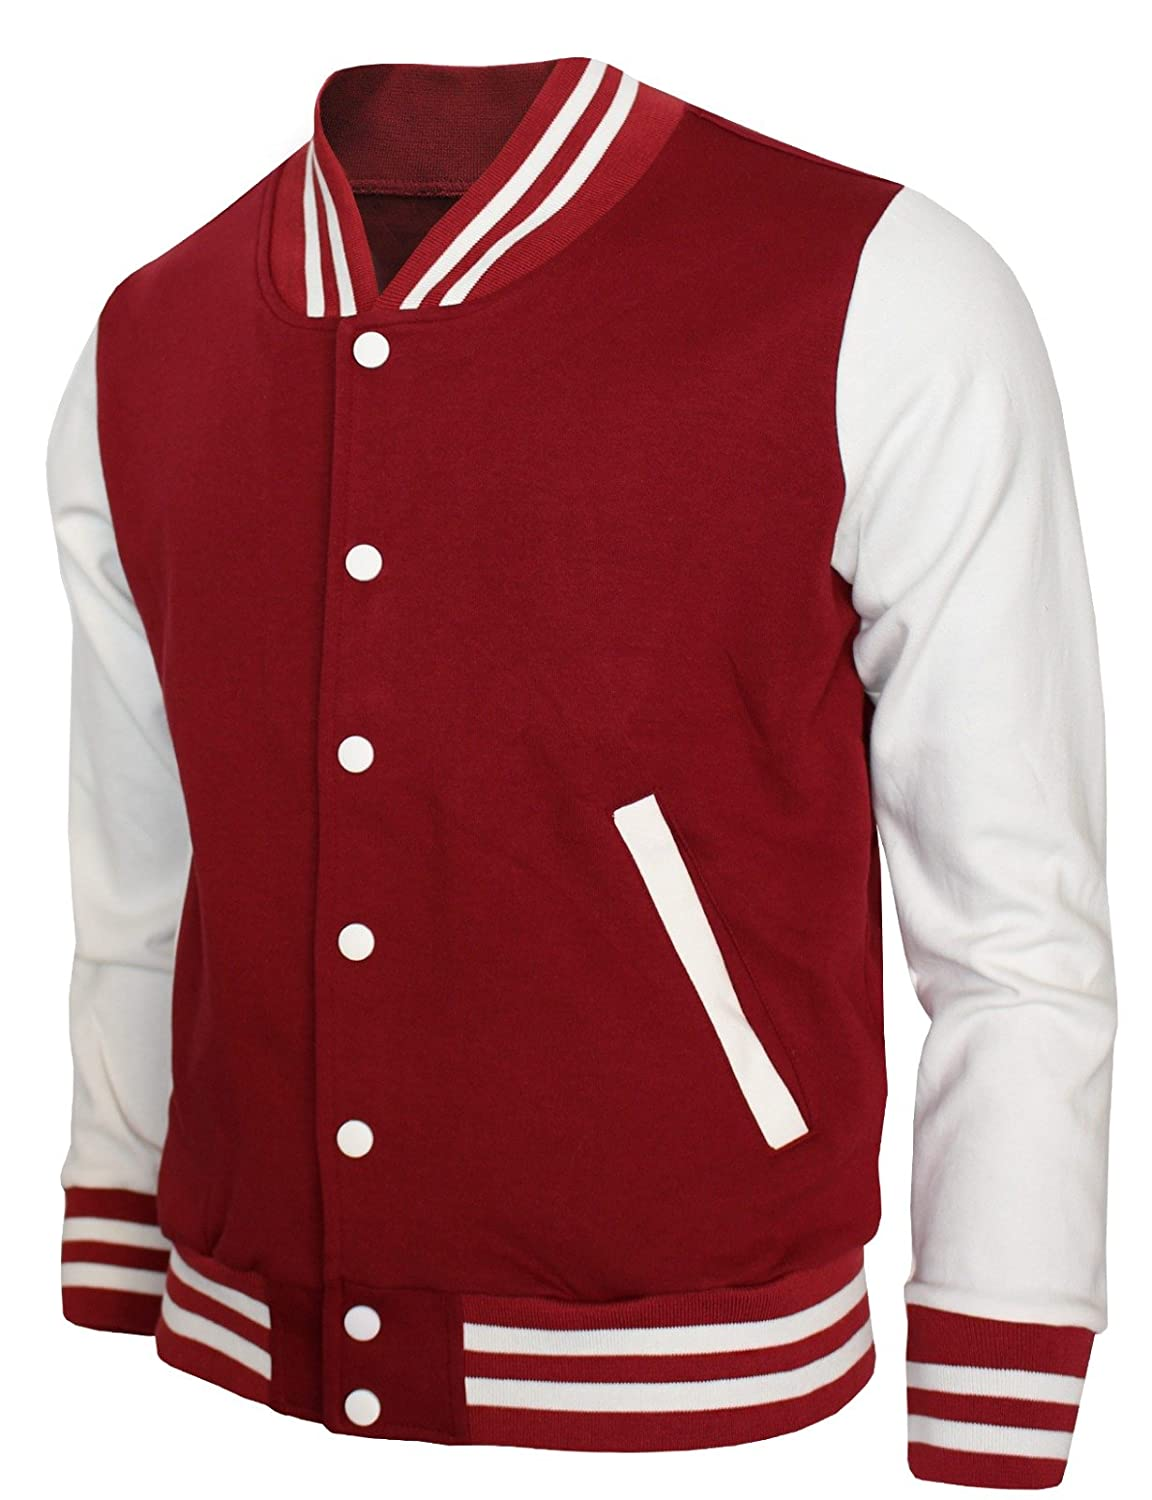 Mens Vintage Shirts – Casual, Dress, T-shirts, Polos BCPOLO Baseball Jacket Varsity Baseball Cotton Jacket Letterman jacket 8 Colors $37.95 AT vintagedancer.com